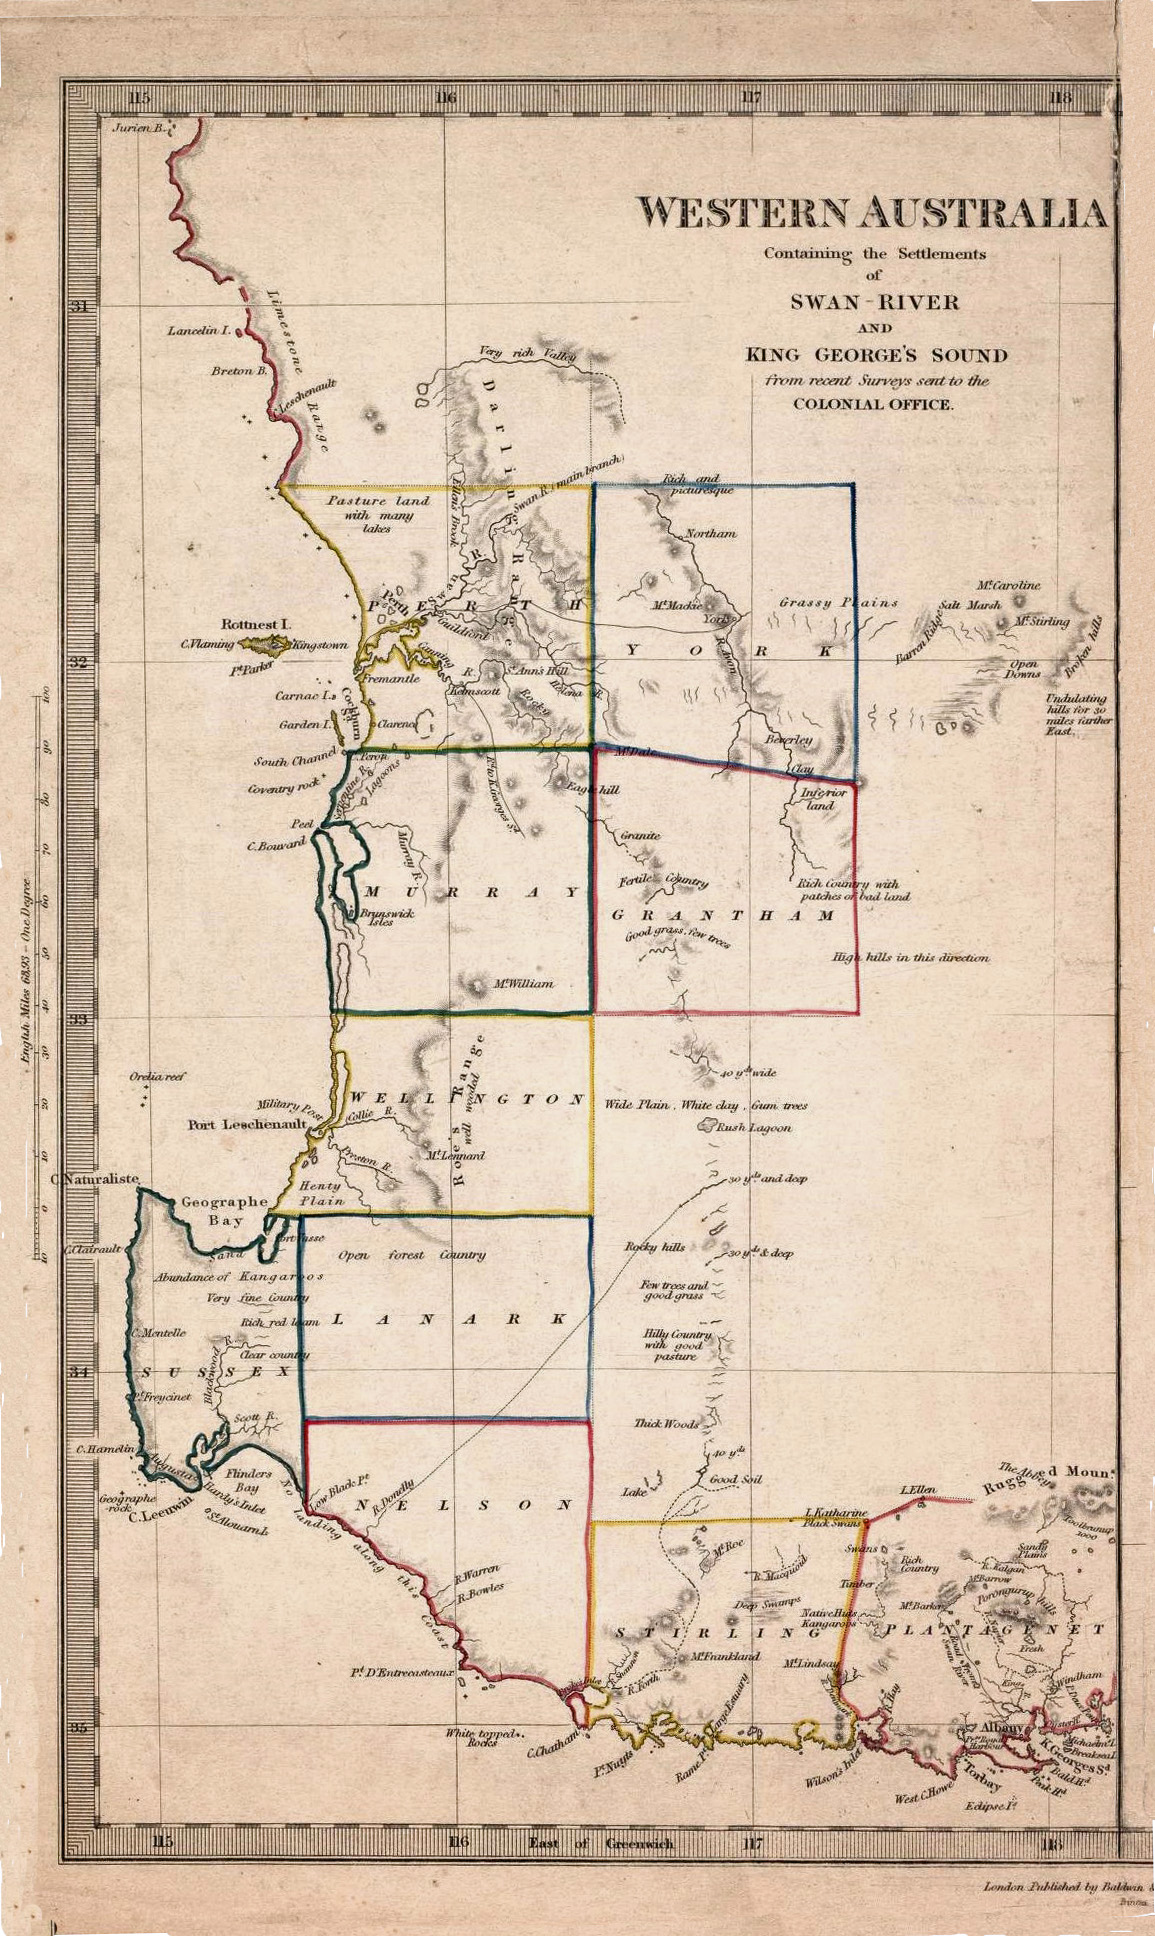 Western Australia, Comprising a Description of the Vicinity of Australind, and Port Leschenault.